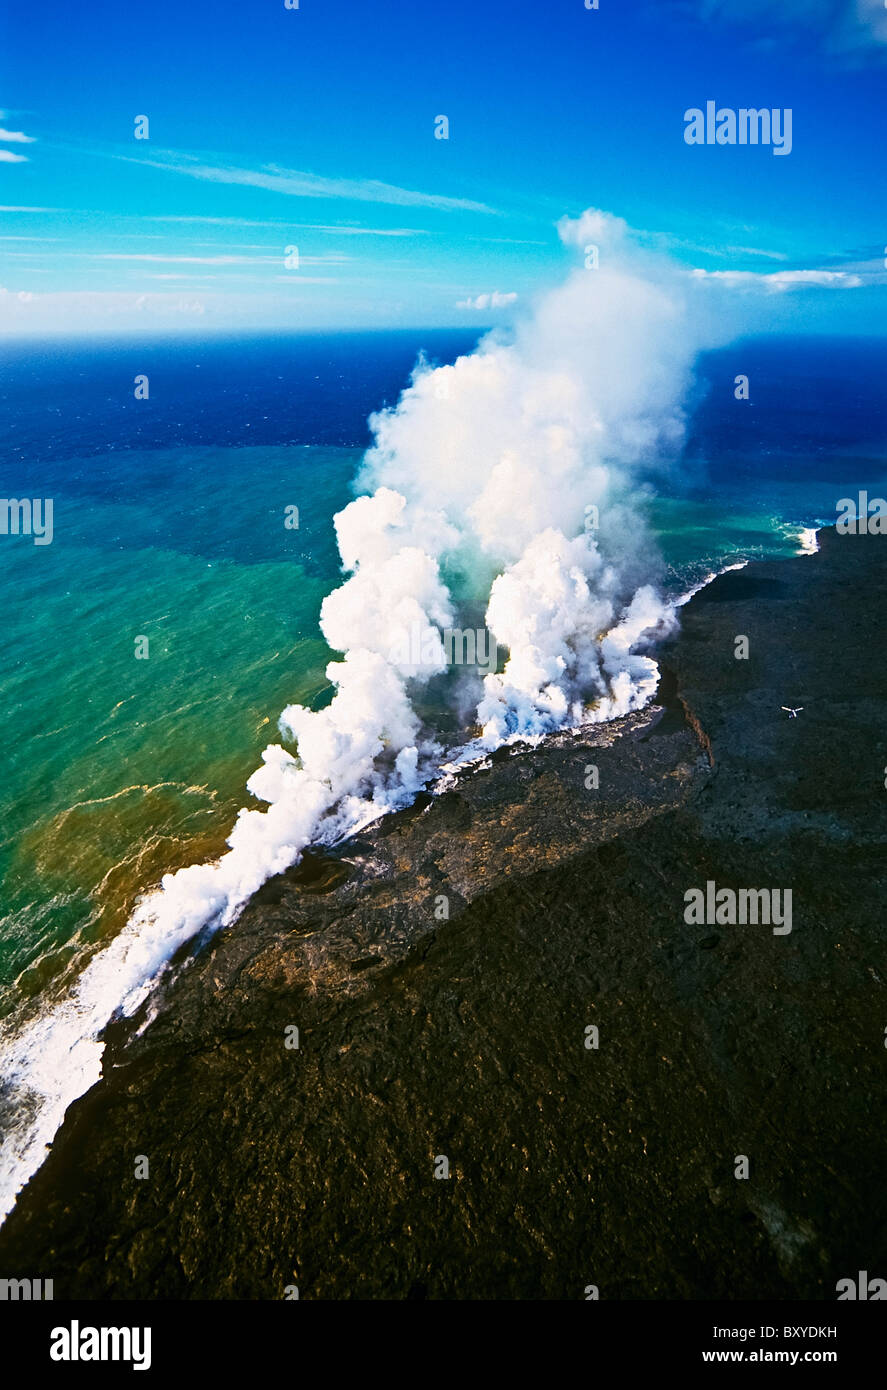 Molten Lava enters cold Ocean, Kilauea Volcano, Big Island, Hawaii, USA - Stock Image